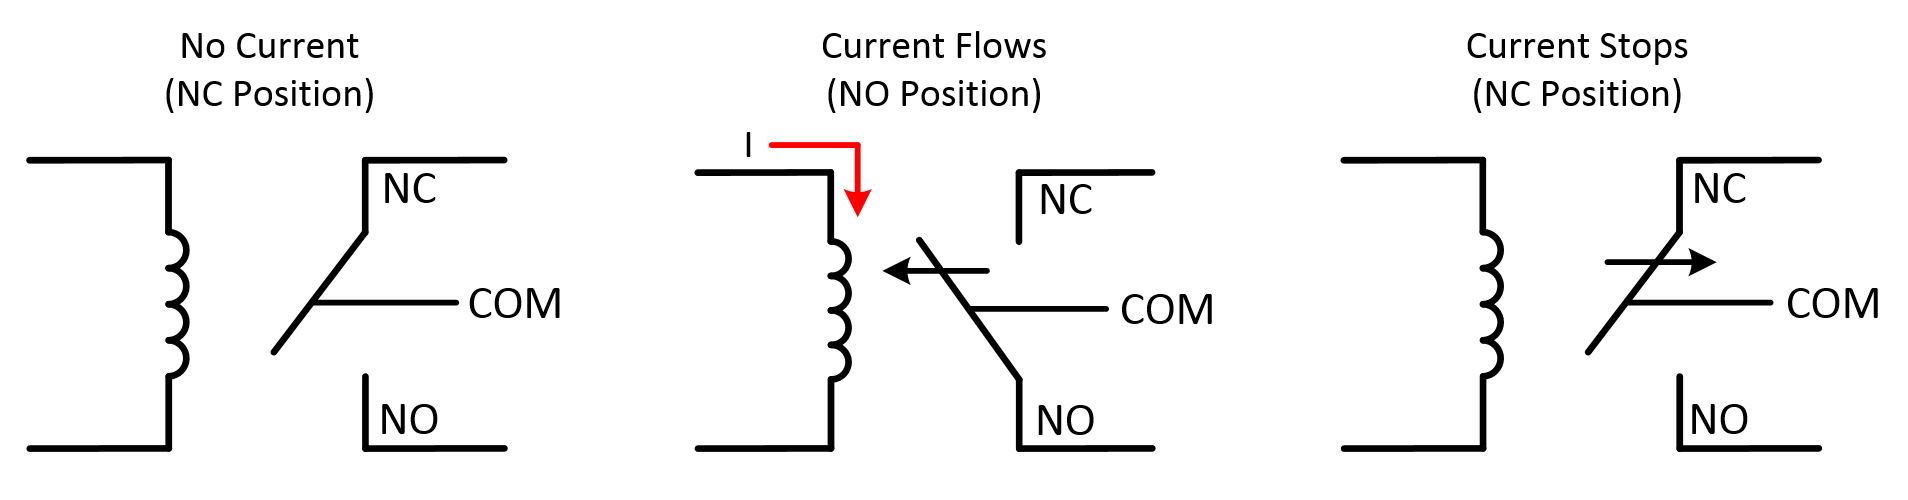 Switch Types And Common Terminology National Instruments How To Build Electronic Selector For 10 Sources With Display Relay Drive